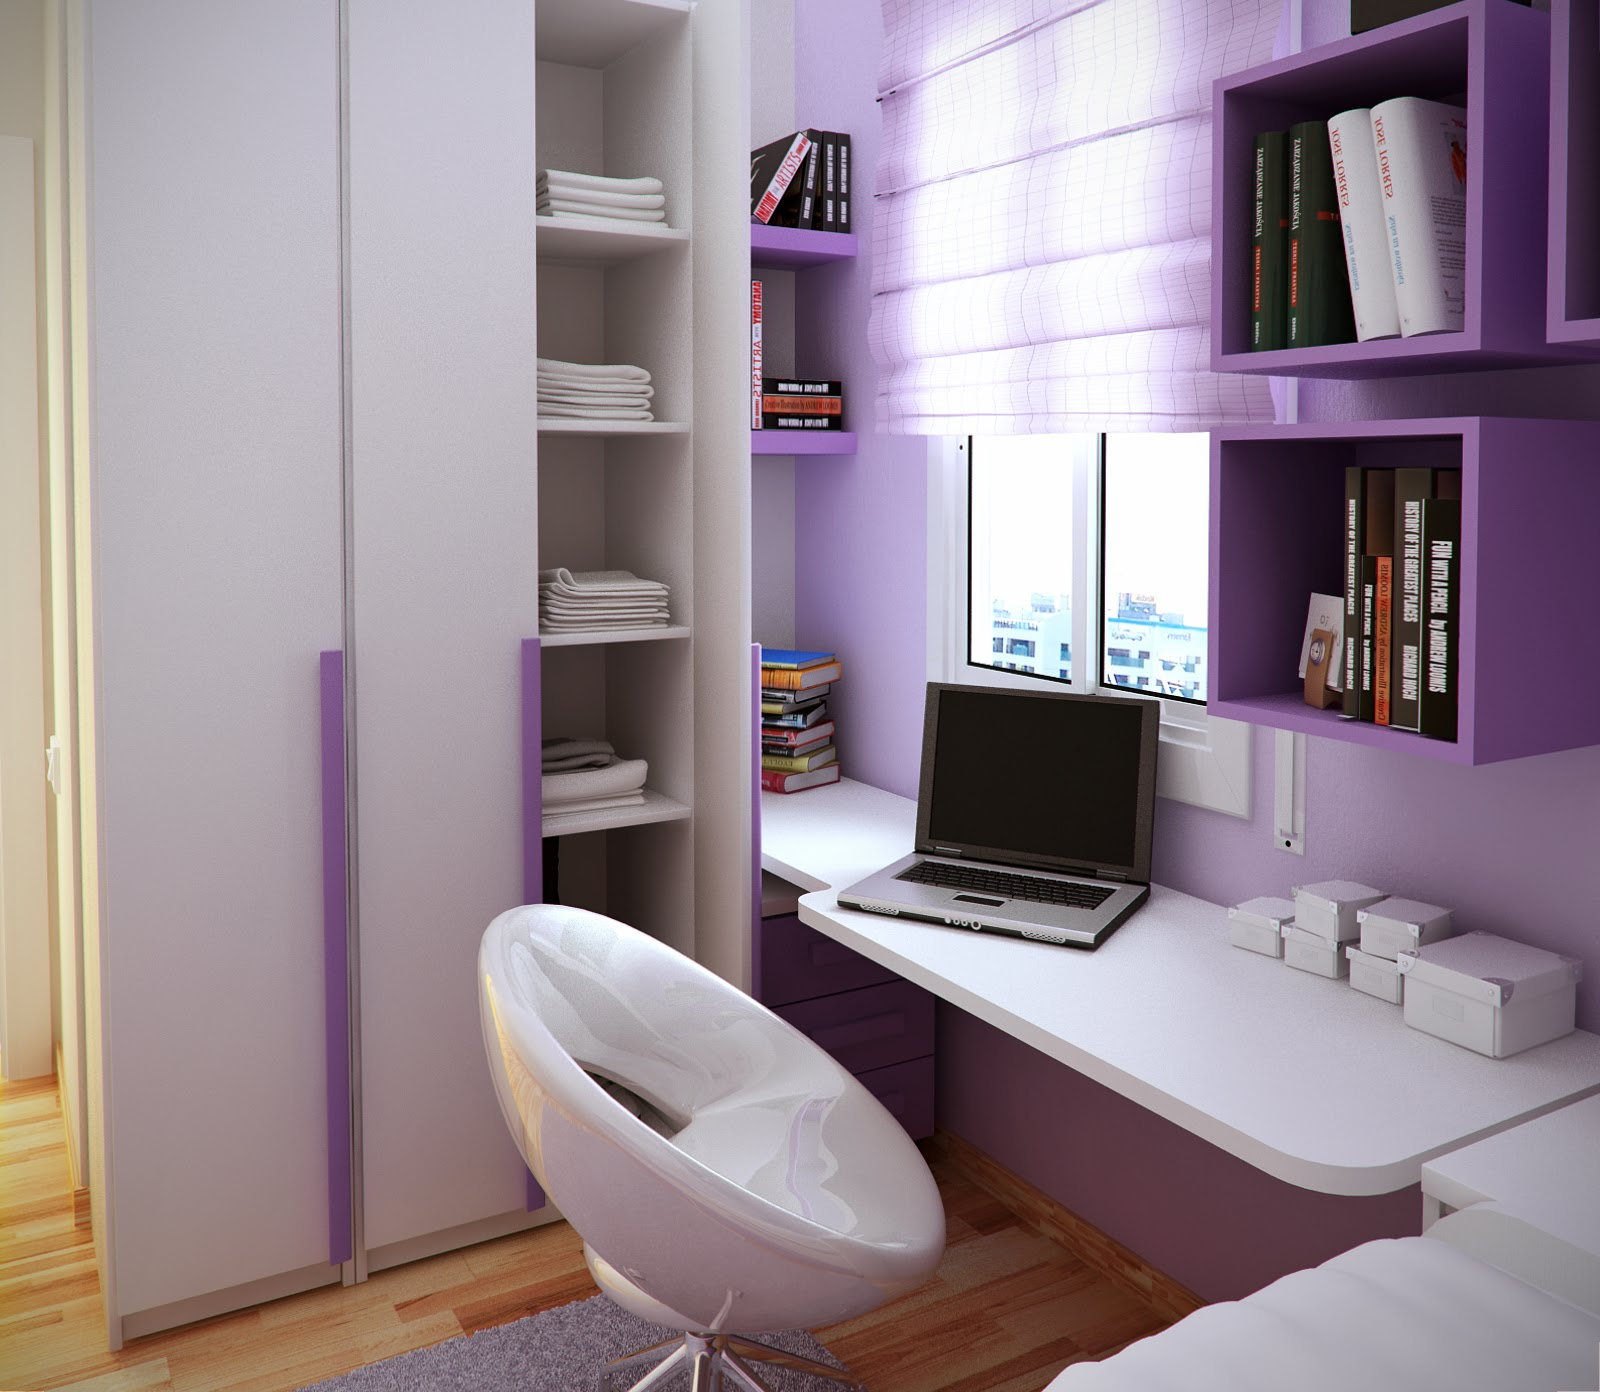 Enjoyable Small Floorspace Kids Rooms Largest Home Design Picture Inspirations Pitcheantrous